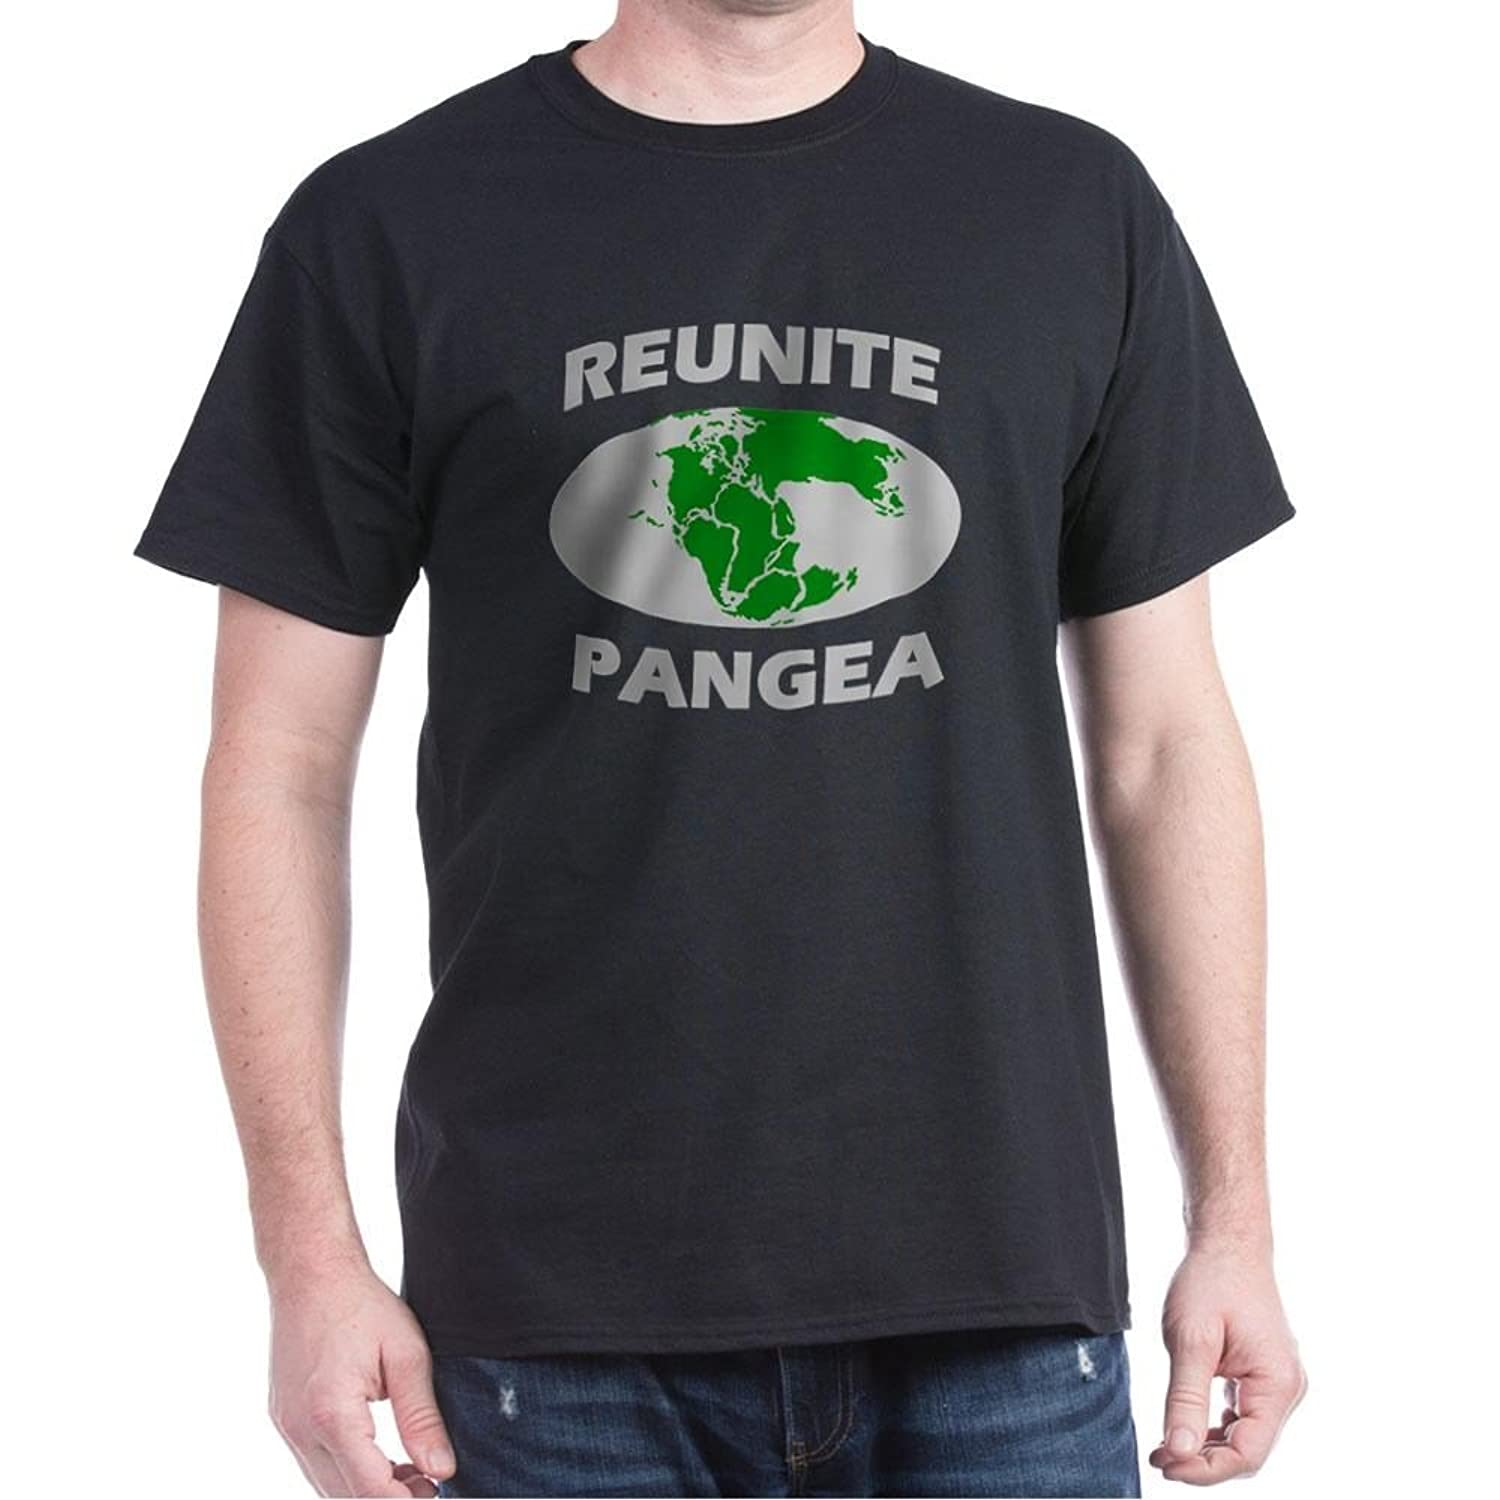 Amazon cafepress reunite pangea 100 cotton t shirt clothing solutioingenieria Image collections